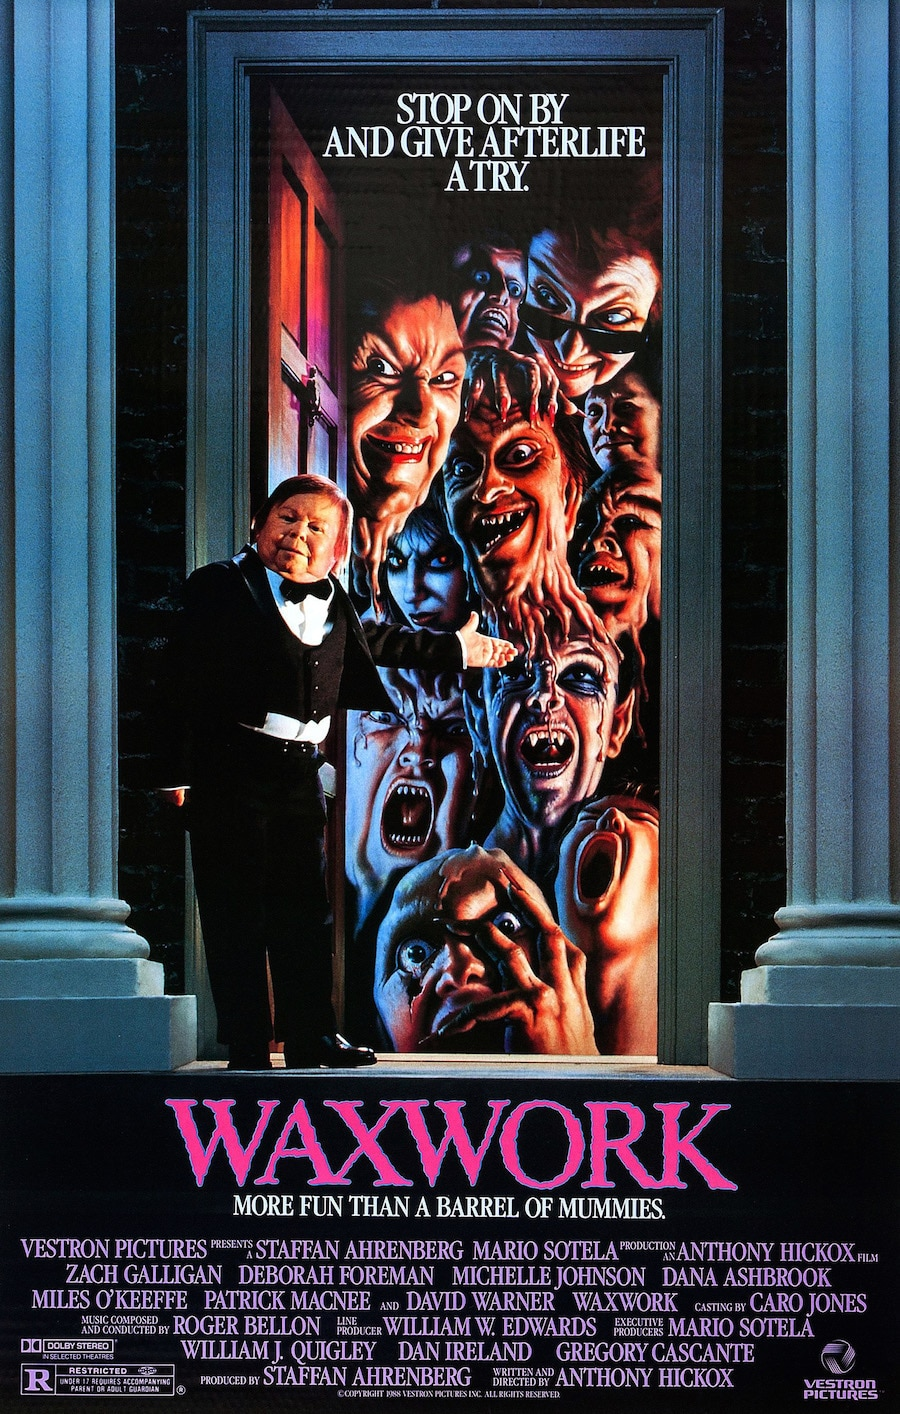 Waxwork Poster - DreadVision Enters The Waxwork In January